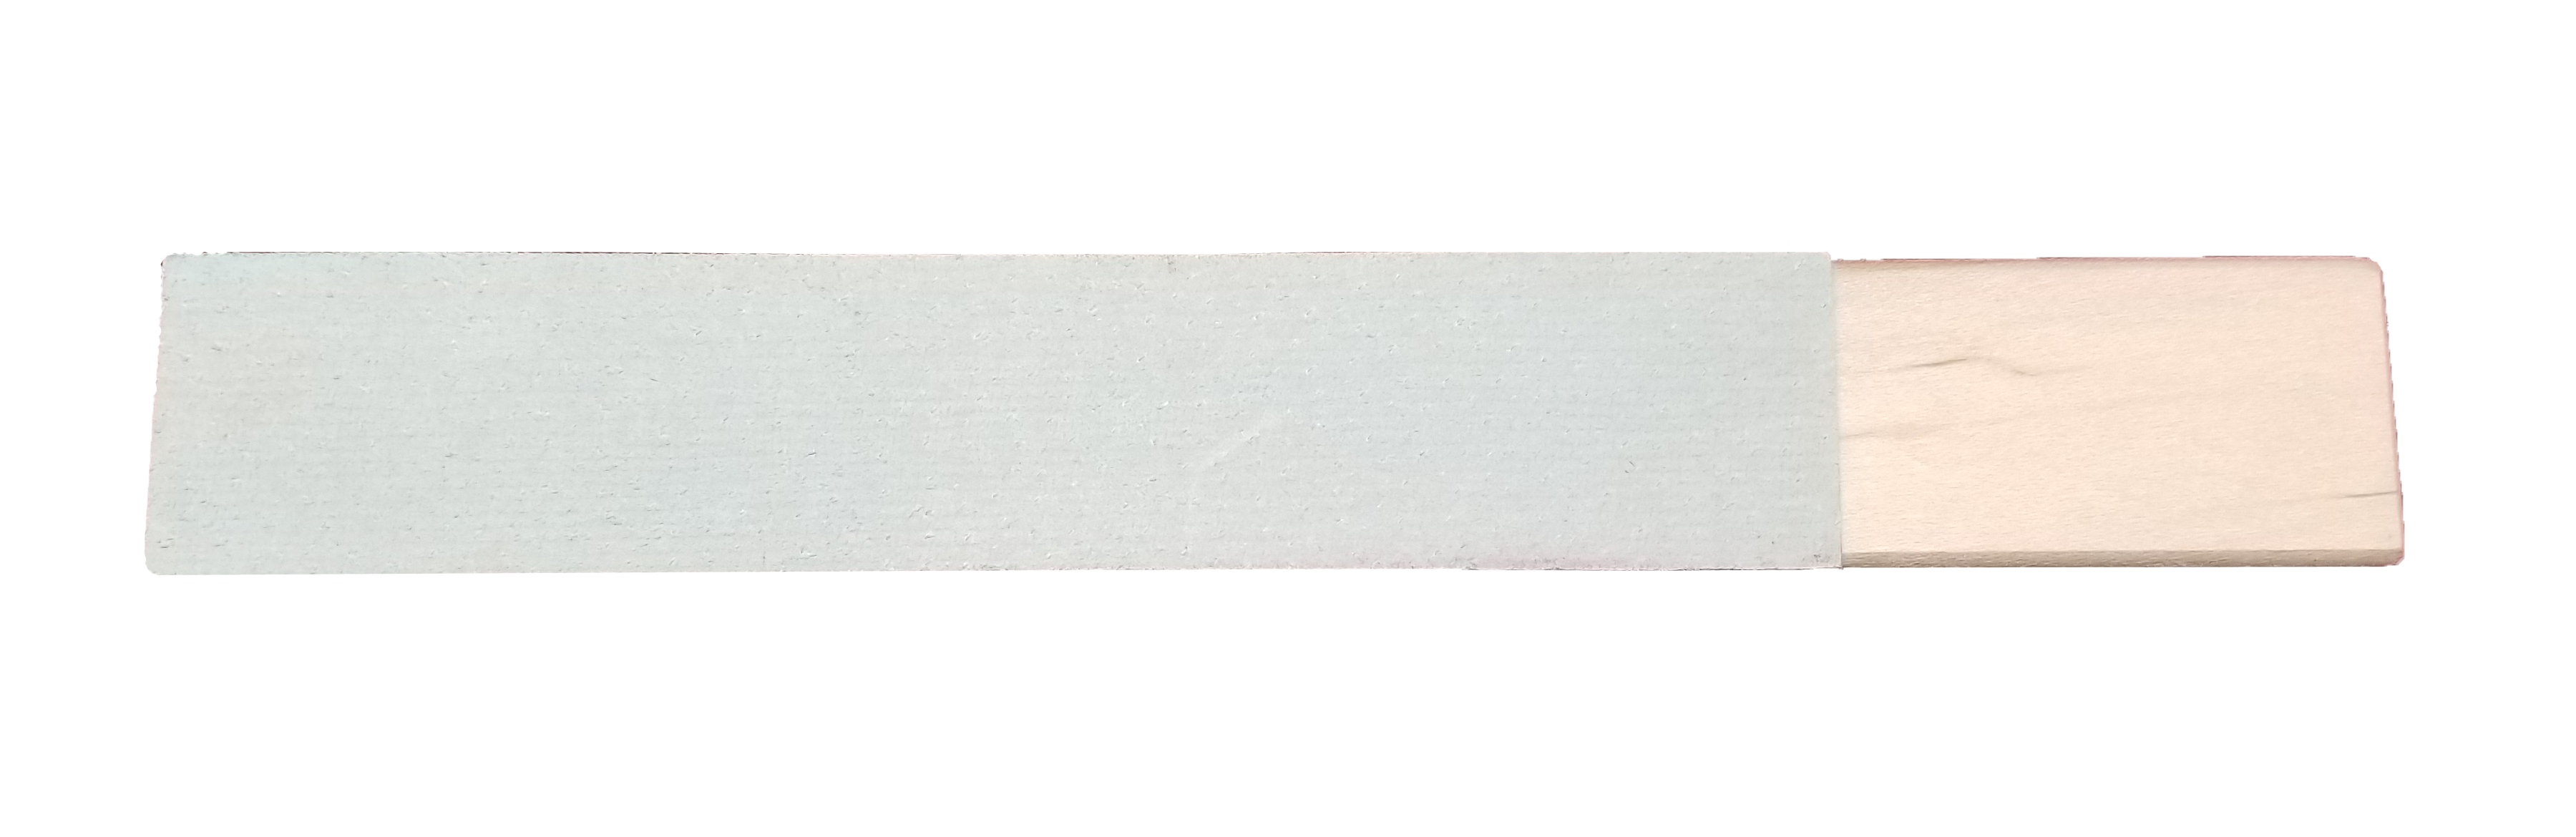 Mini Strop, Dunkle, 9 1/2 inch x 1 1/4 inch